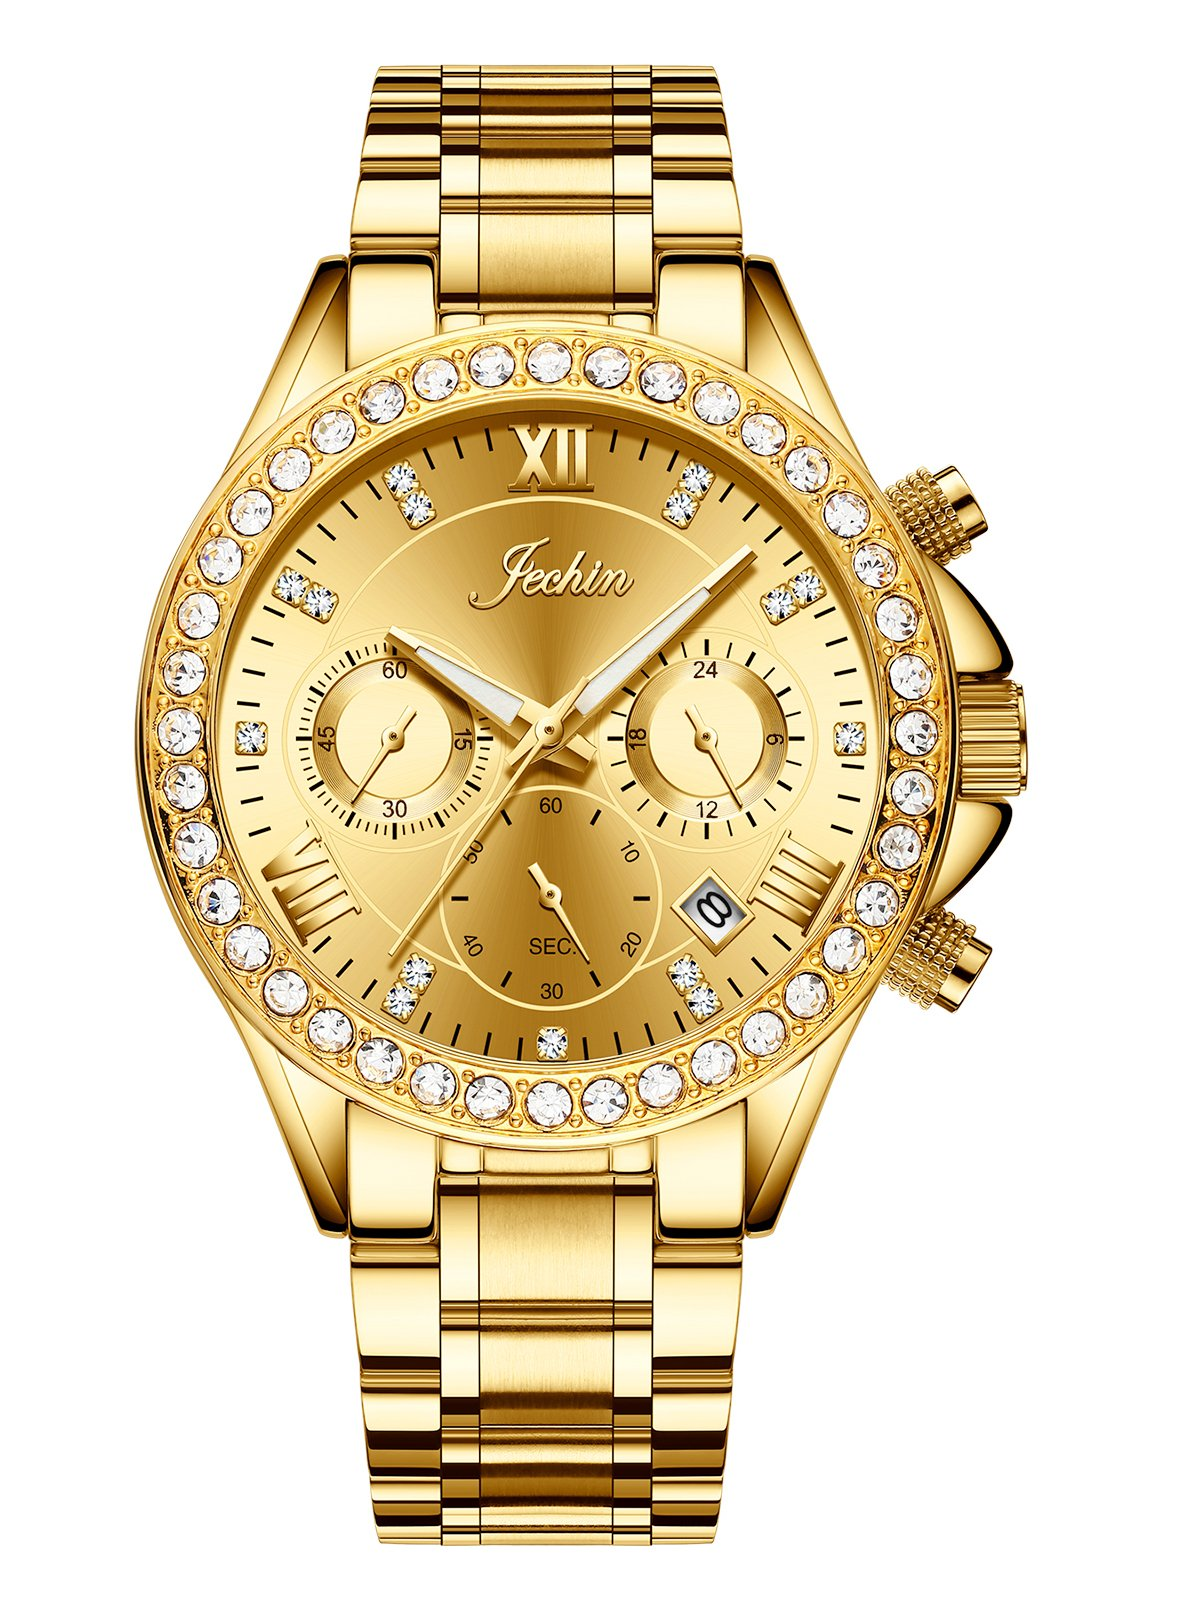 Jechin Unisex Luxury Gold Diamond Crystal Calendar Chronograph Watch 18K Gold Plated Stainless Steel Watches for Women by Jechin